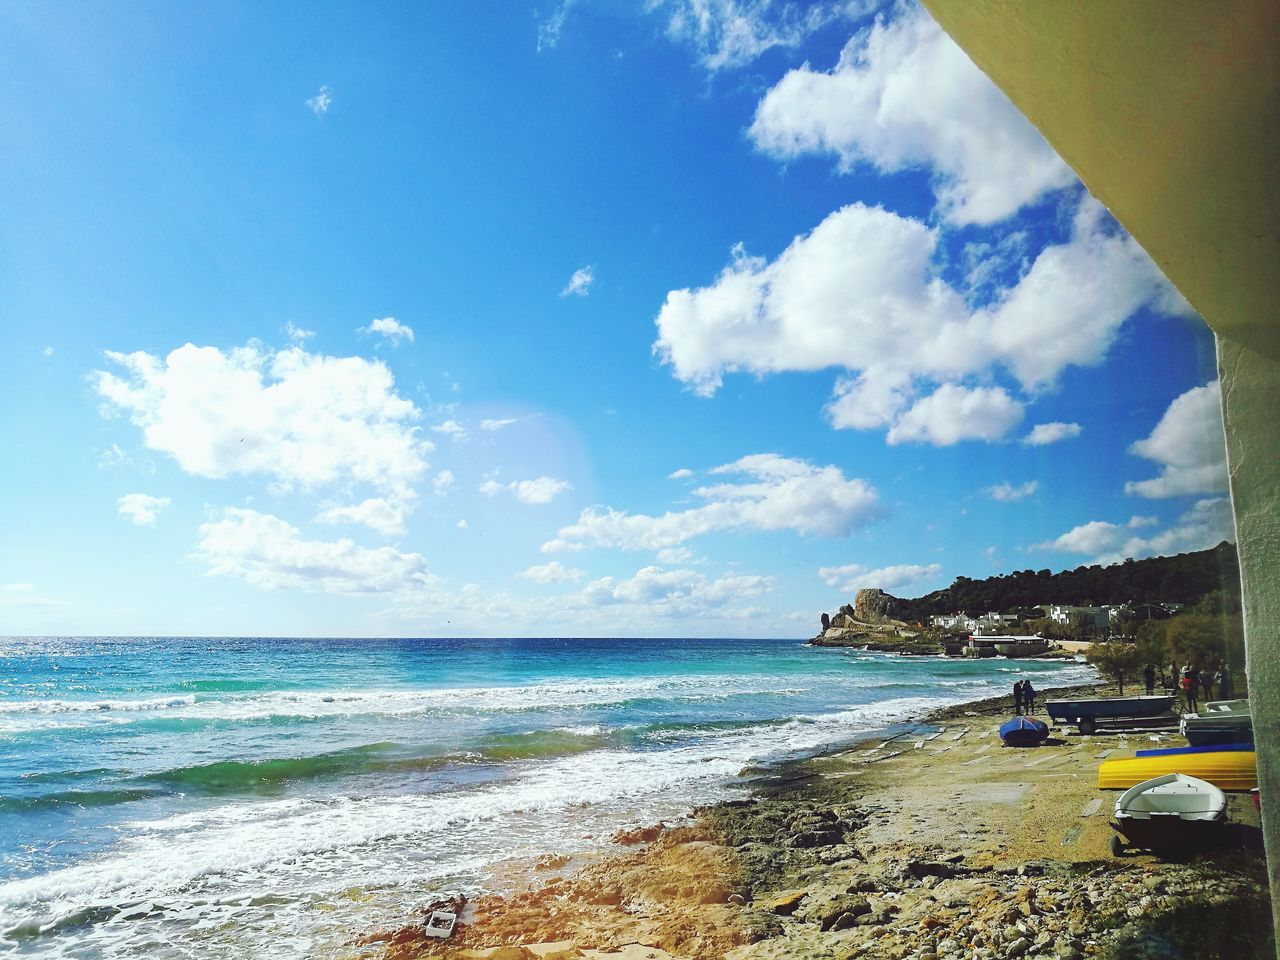 sea, sky, water, beach, beauty in nature, nature, cloud - sky, horizon over water, day, scenics, outdoors, wave, vacations, blue, no people